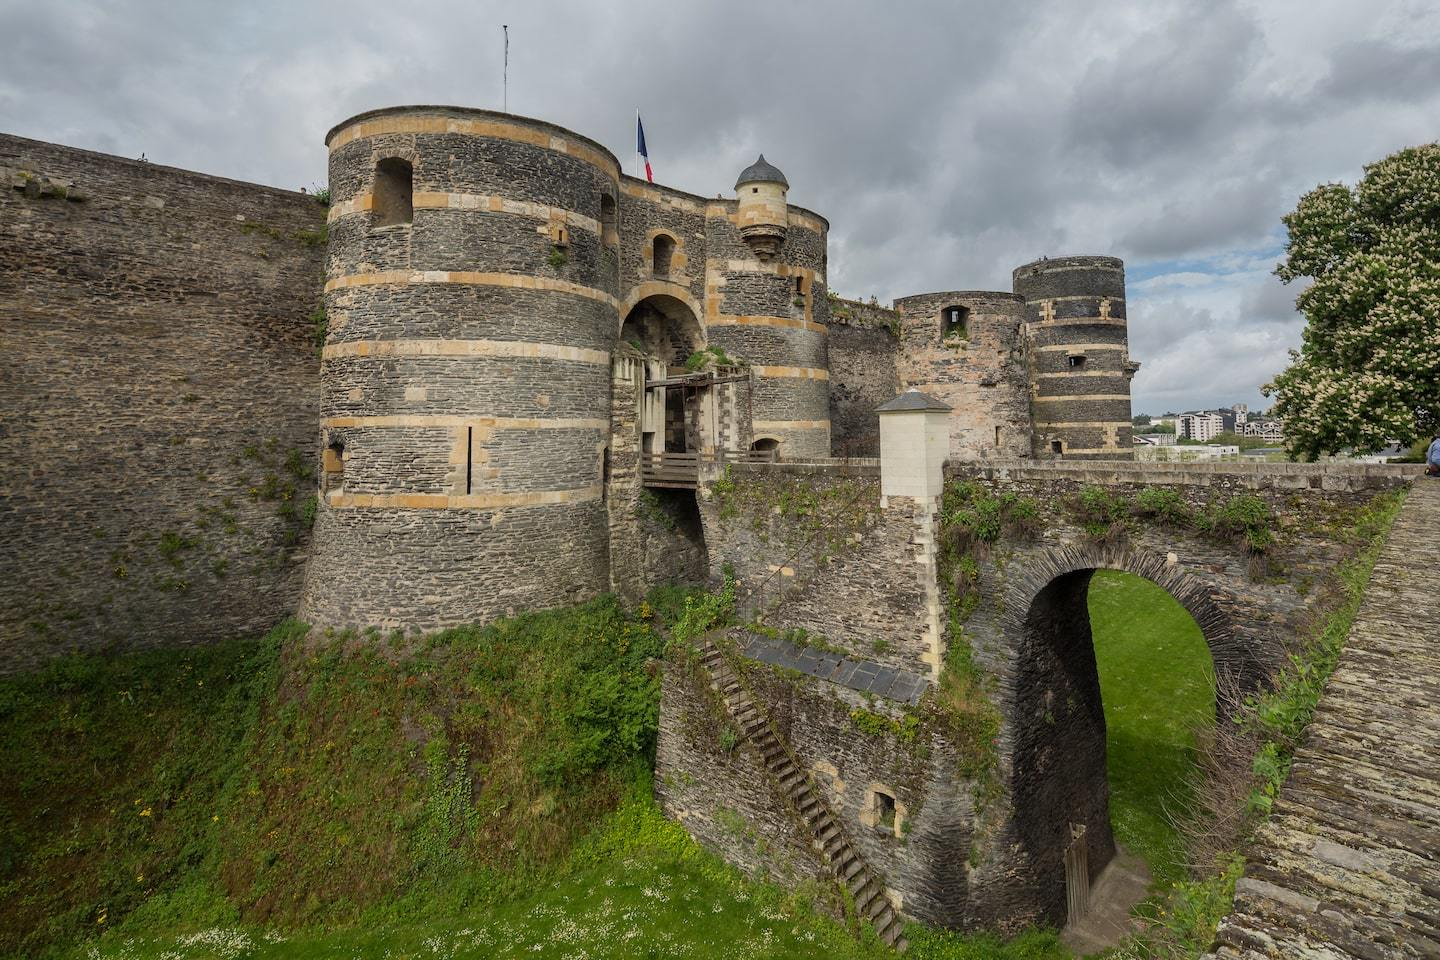 castle in france with curved towers and bridge